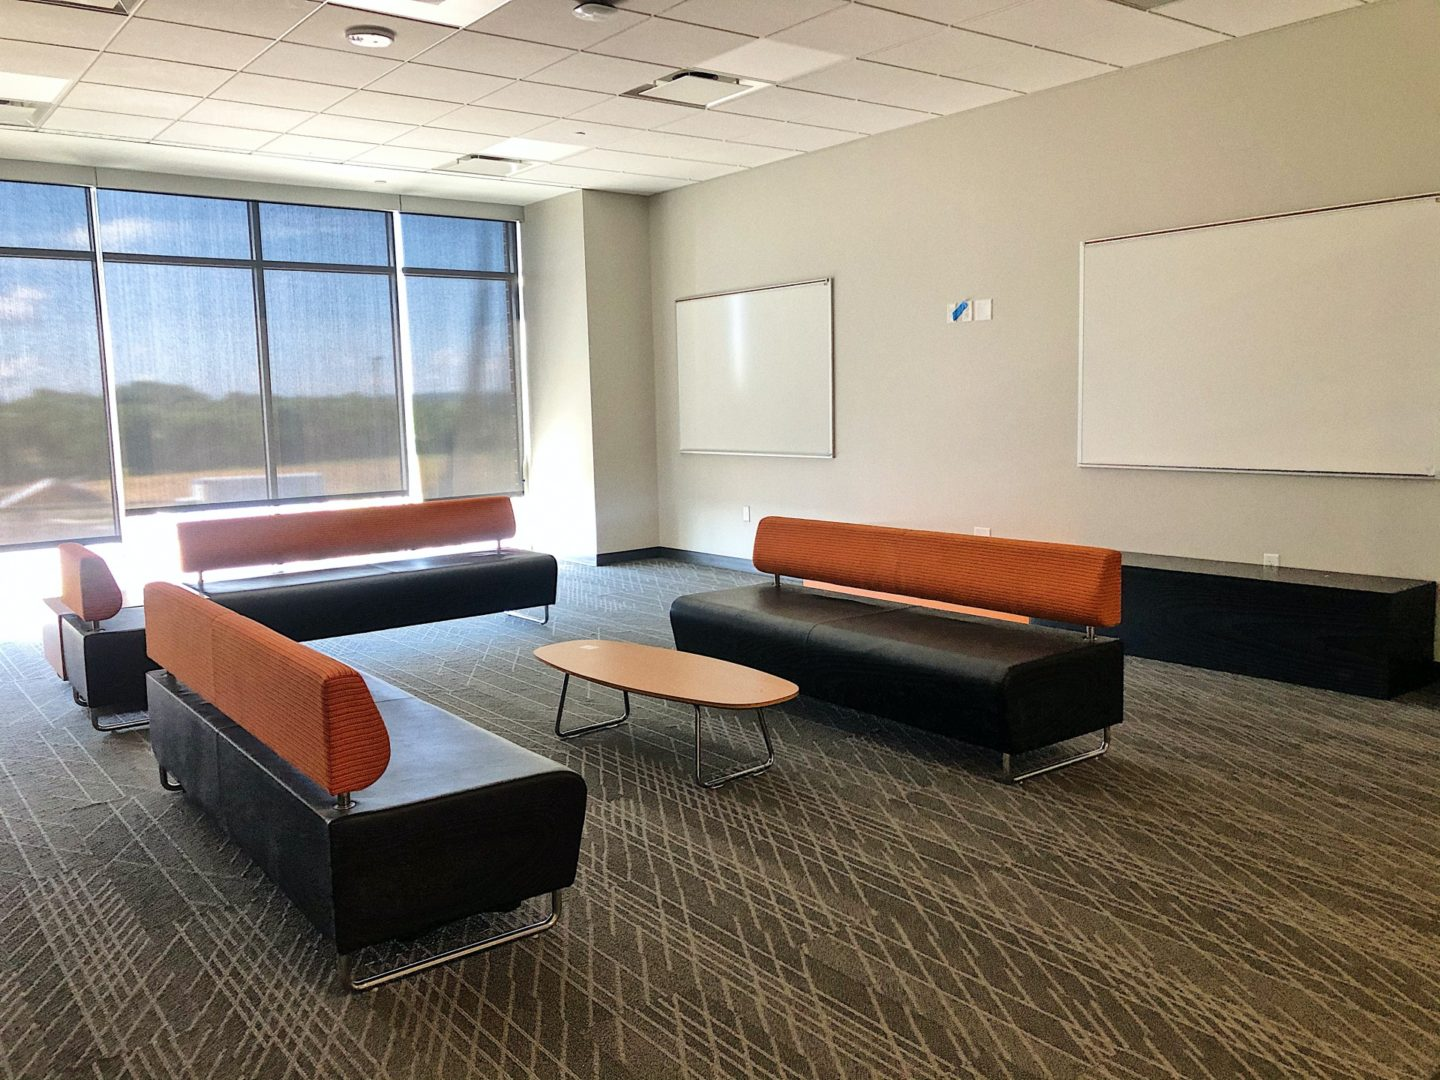 couches and tables in school study area